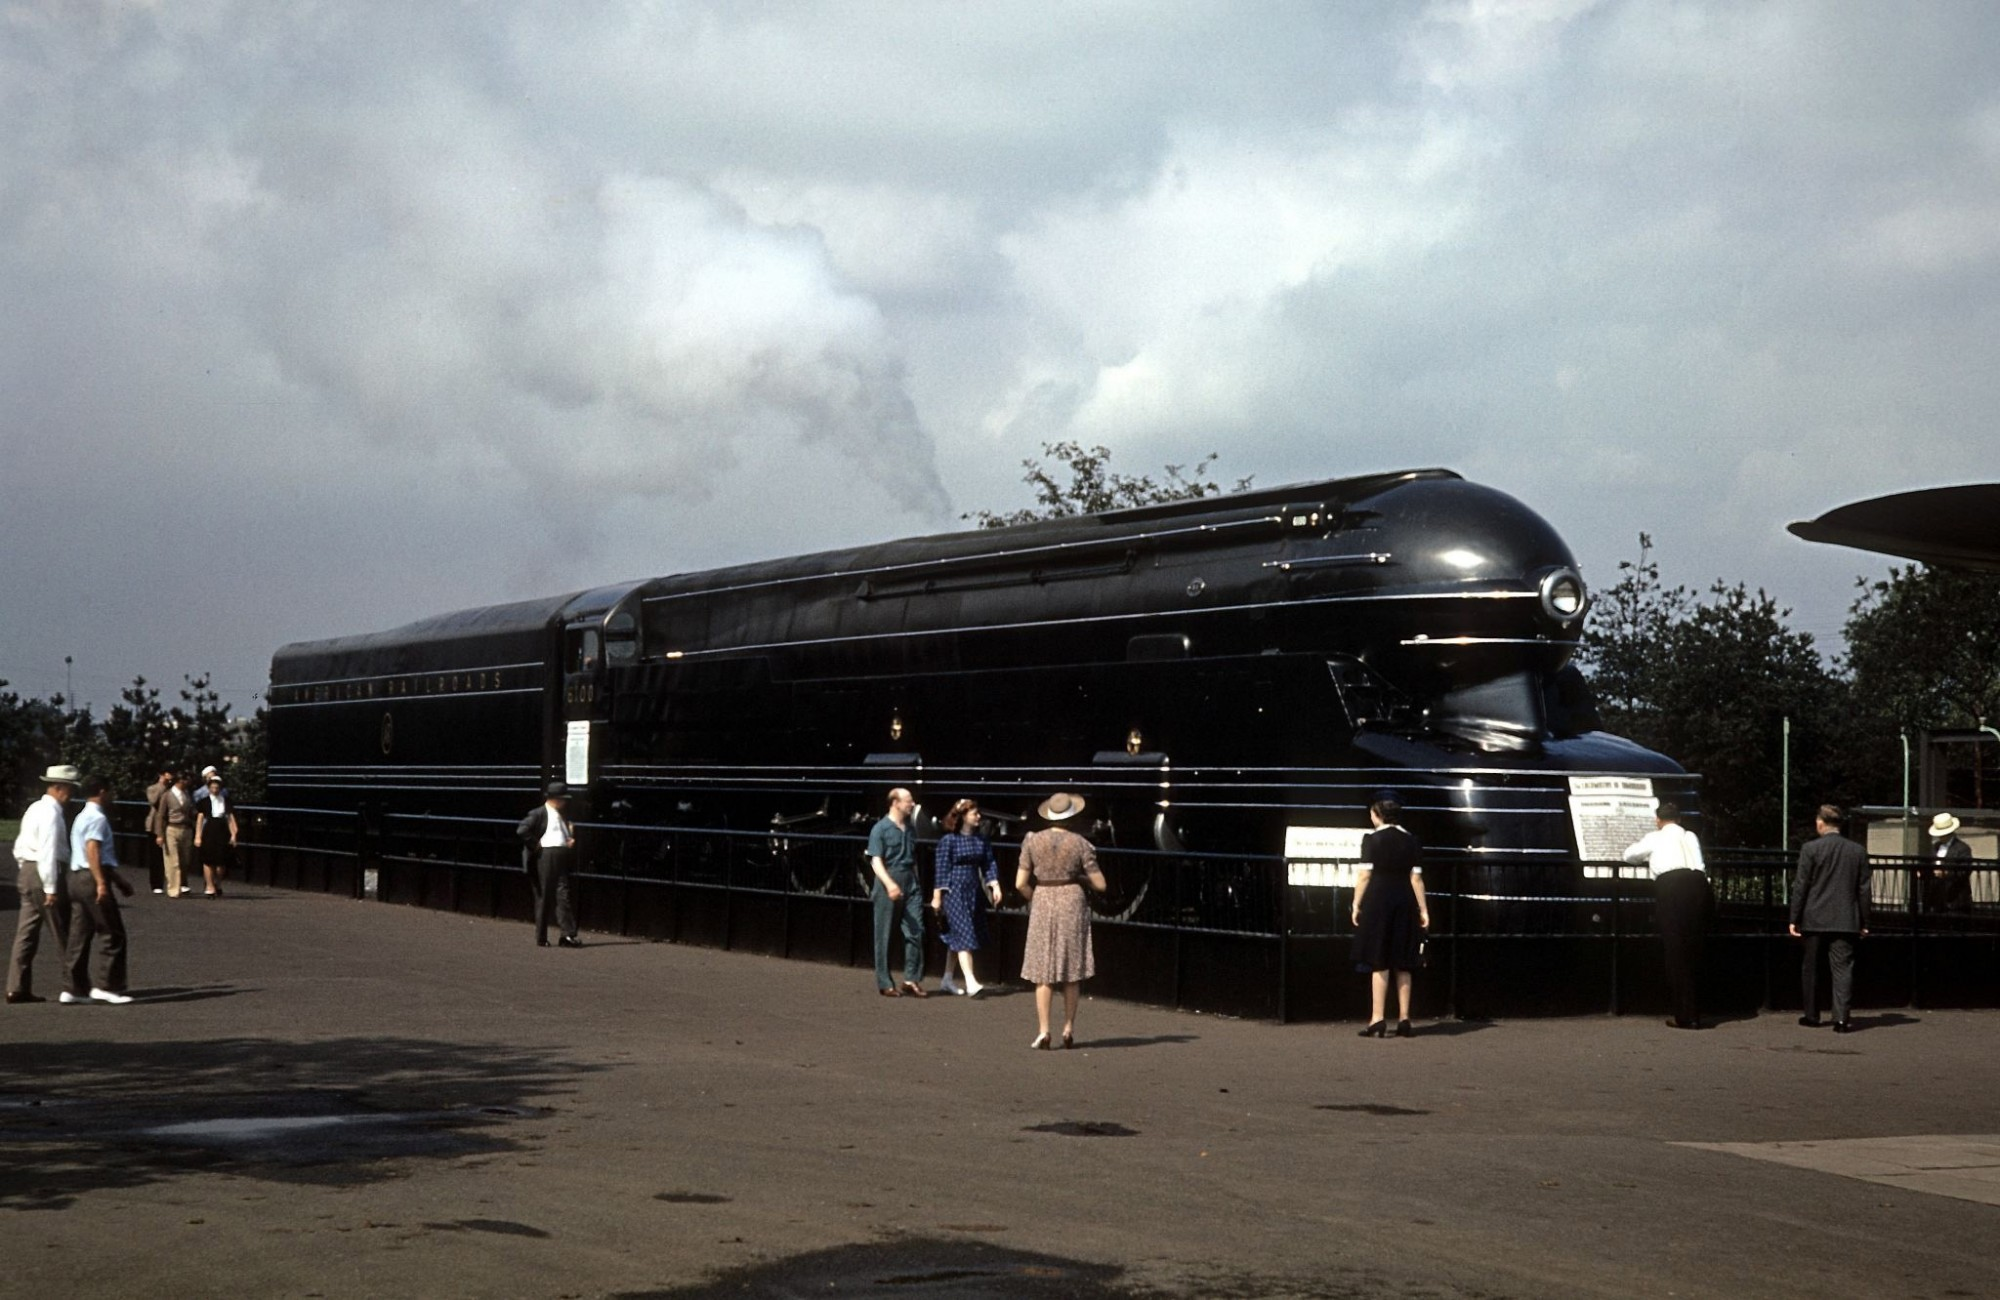 1940 view of the PRR S1 class steam locomotive (nicknamed 'The Big Engine' and designed by Raymond Loewy) on display at the 1939 New York World's Fair